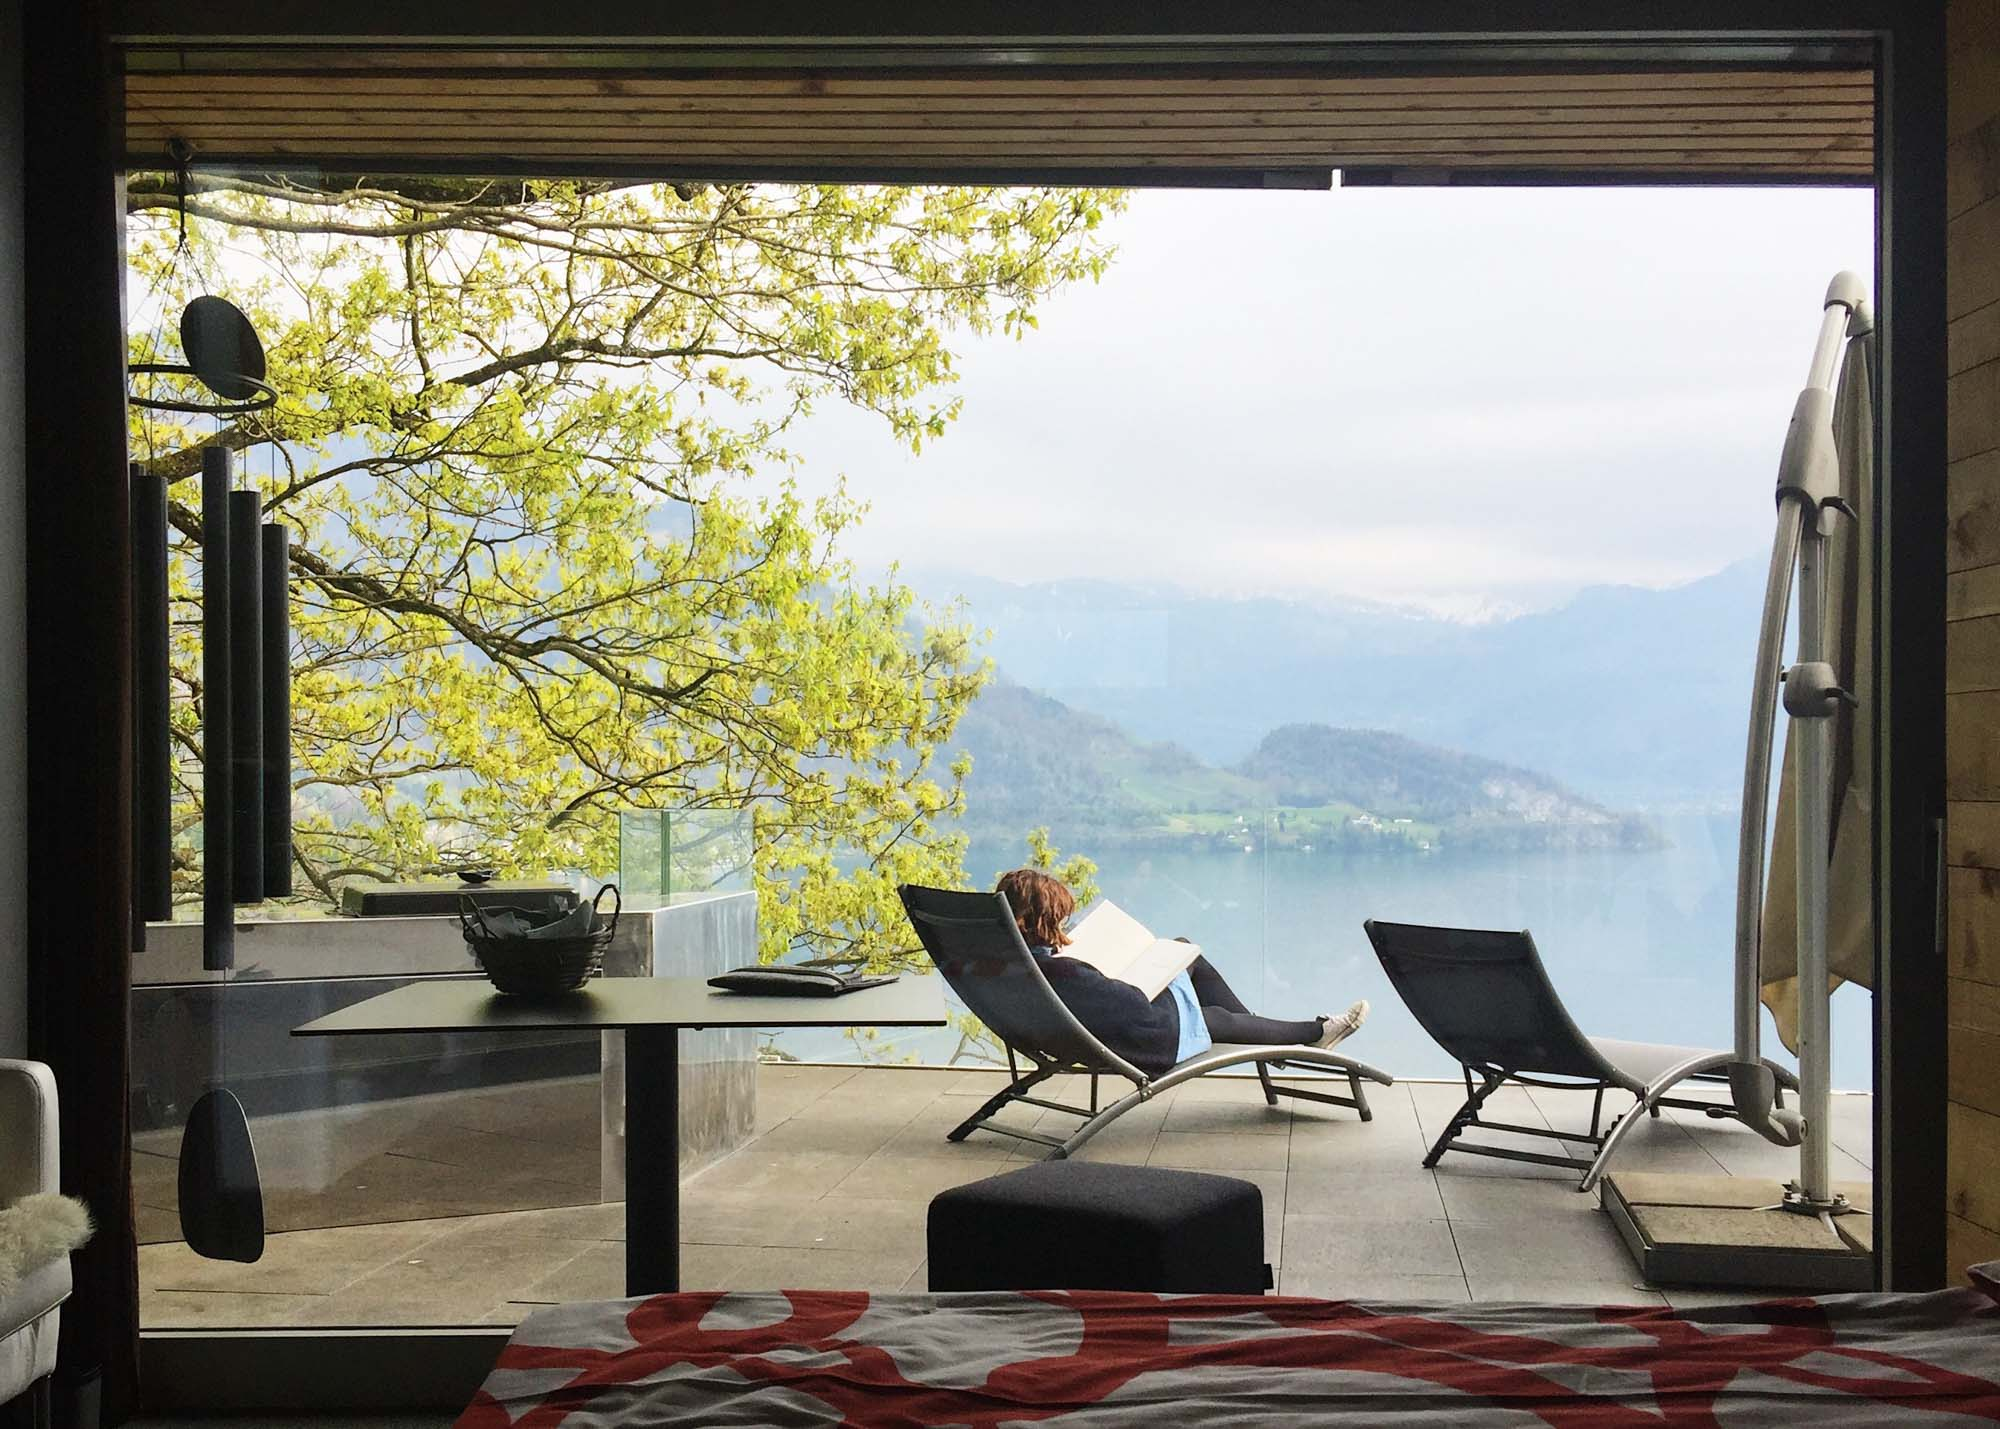 Europe Road Trip – Weggis AirBnB near Lucerne